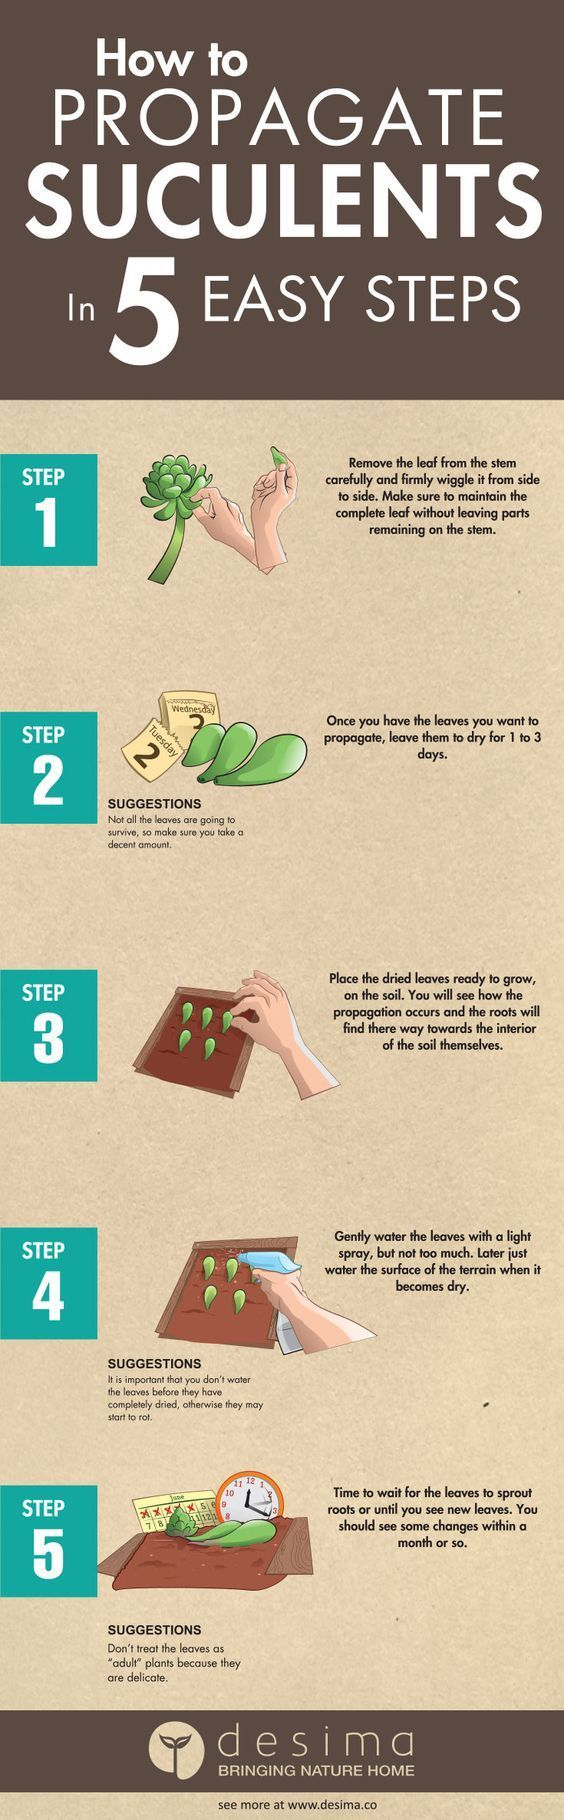 How to Propagate Succulents in 5 Easy Steps #Landscaping